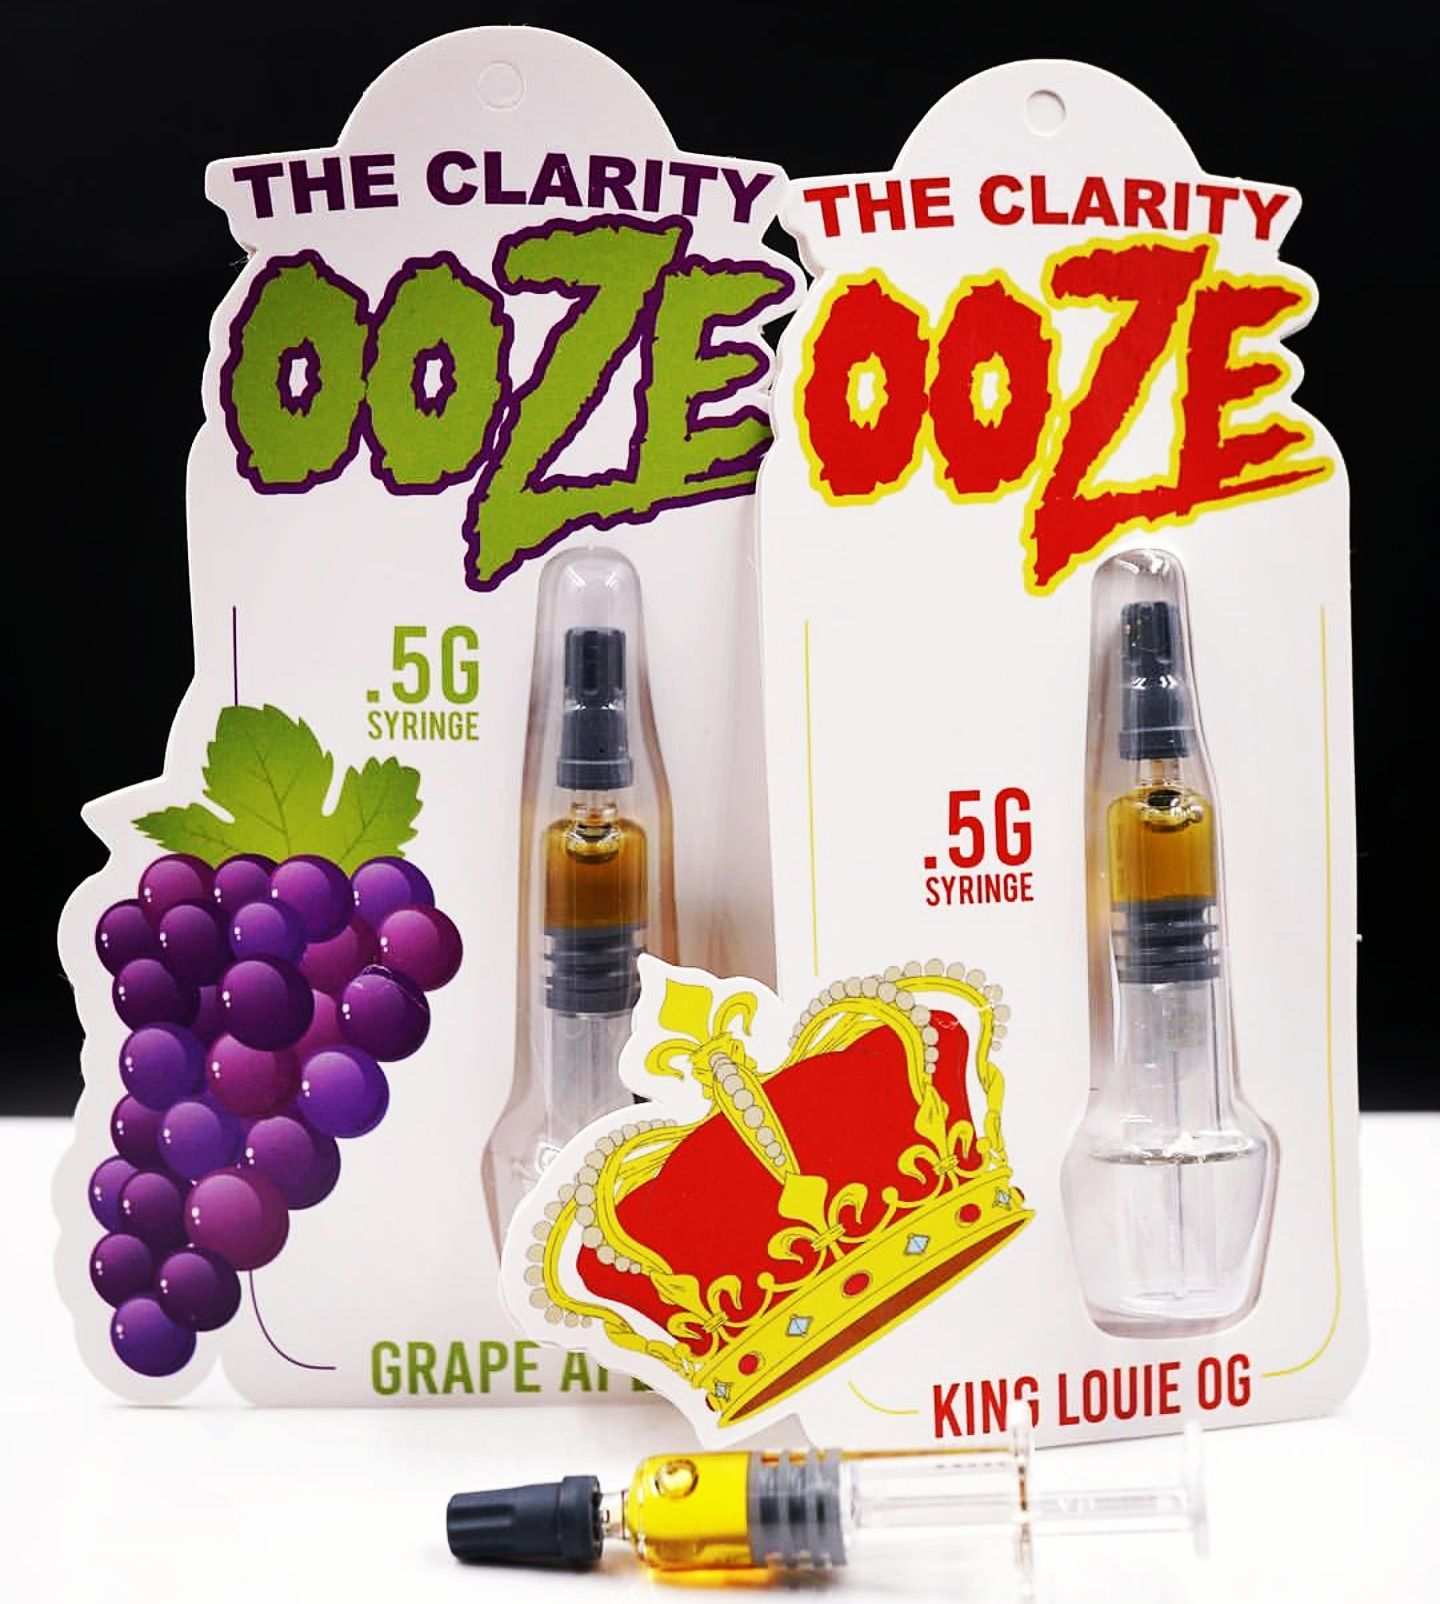 The Clarity Ooze Paris OG